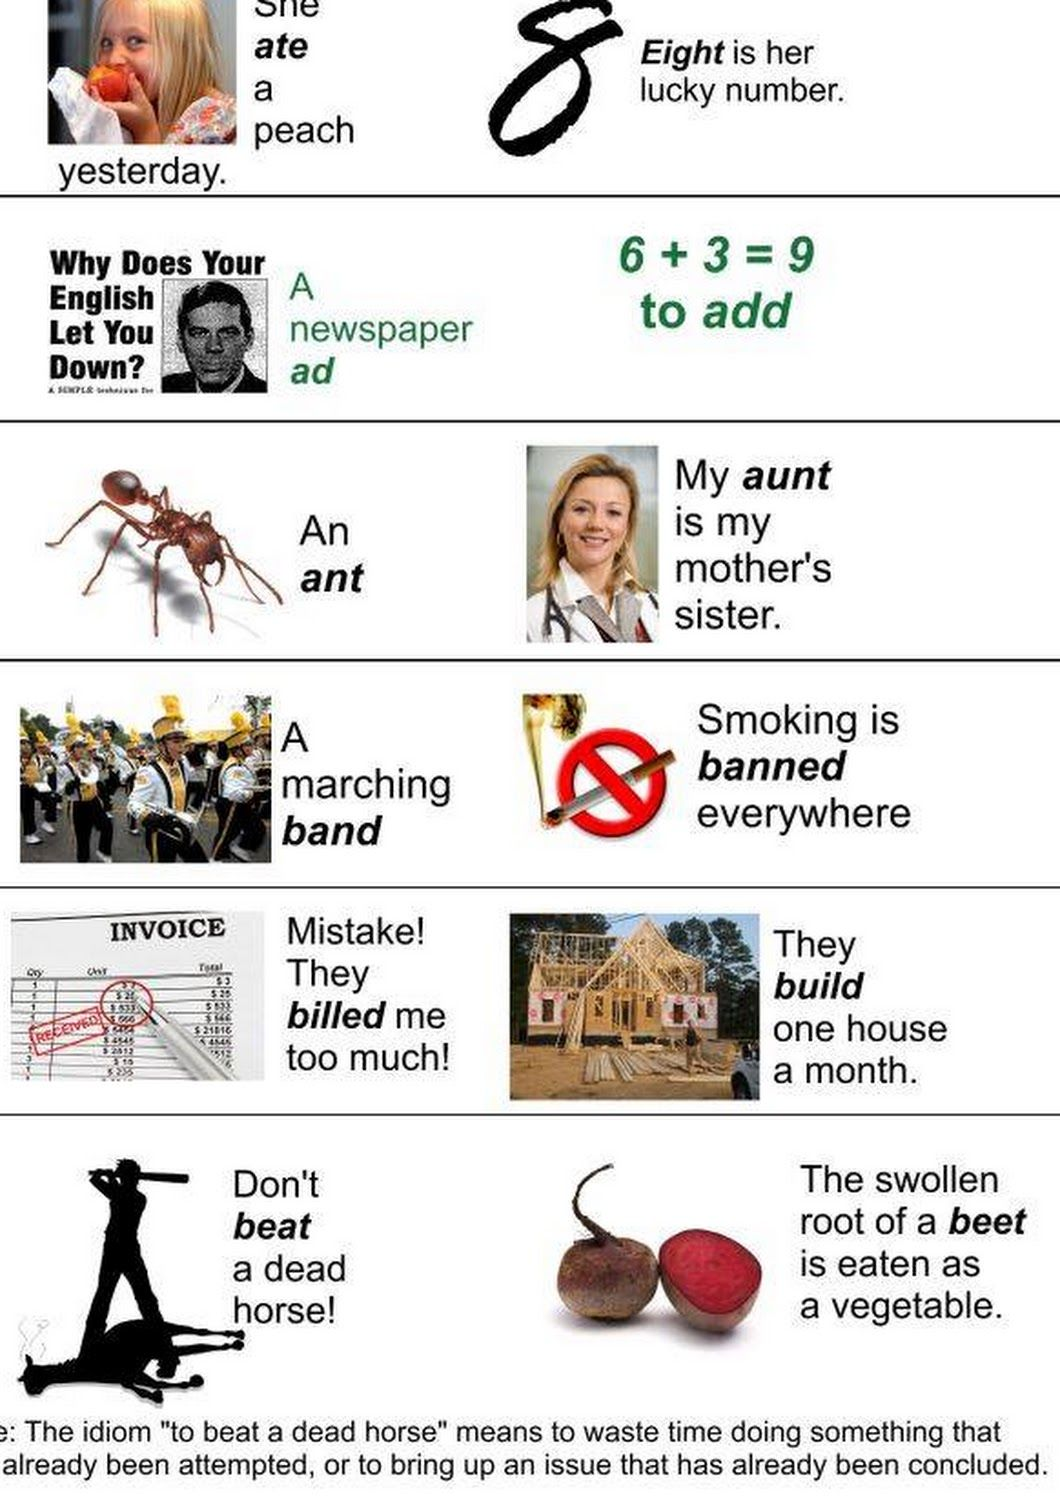 Homophones are words that sound the same but are written differently and have different meaning: